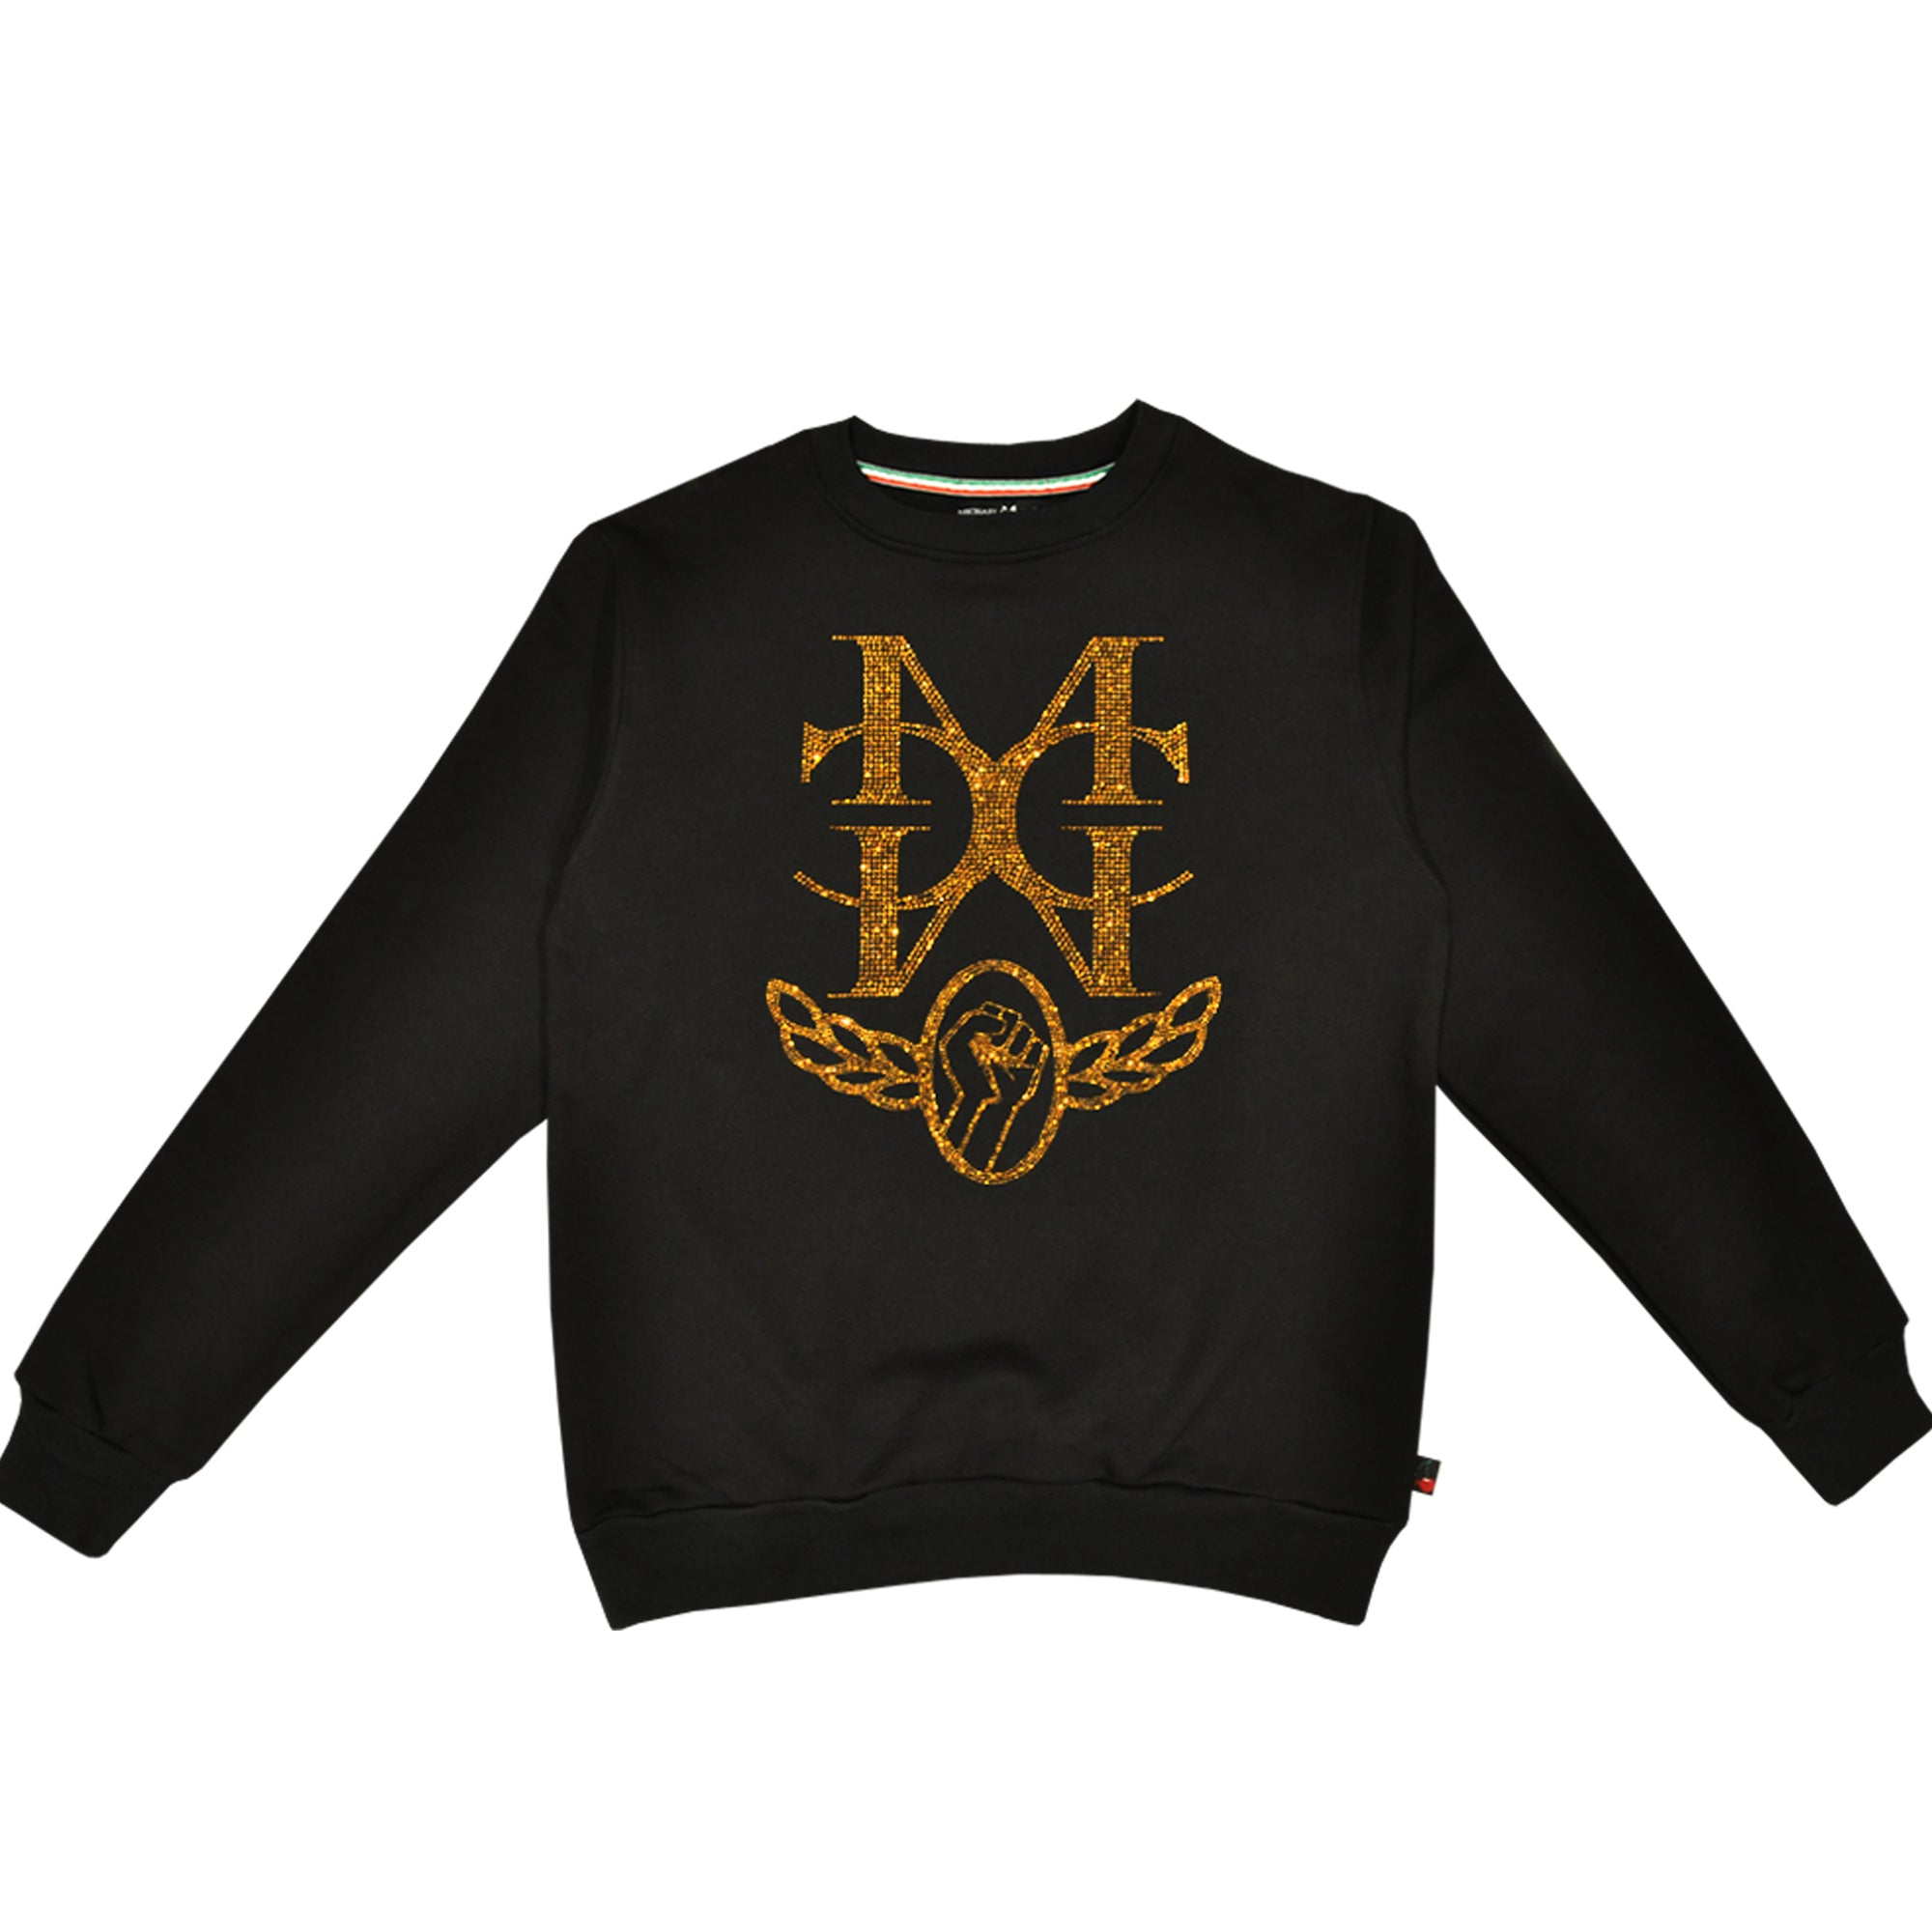 McMc  Sweatshirt Gold (LARGE ONLY)